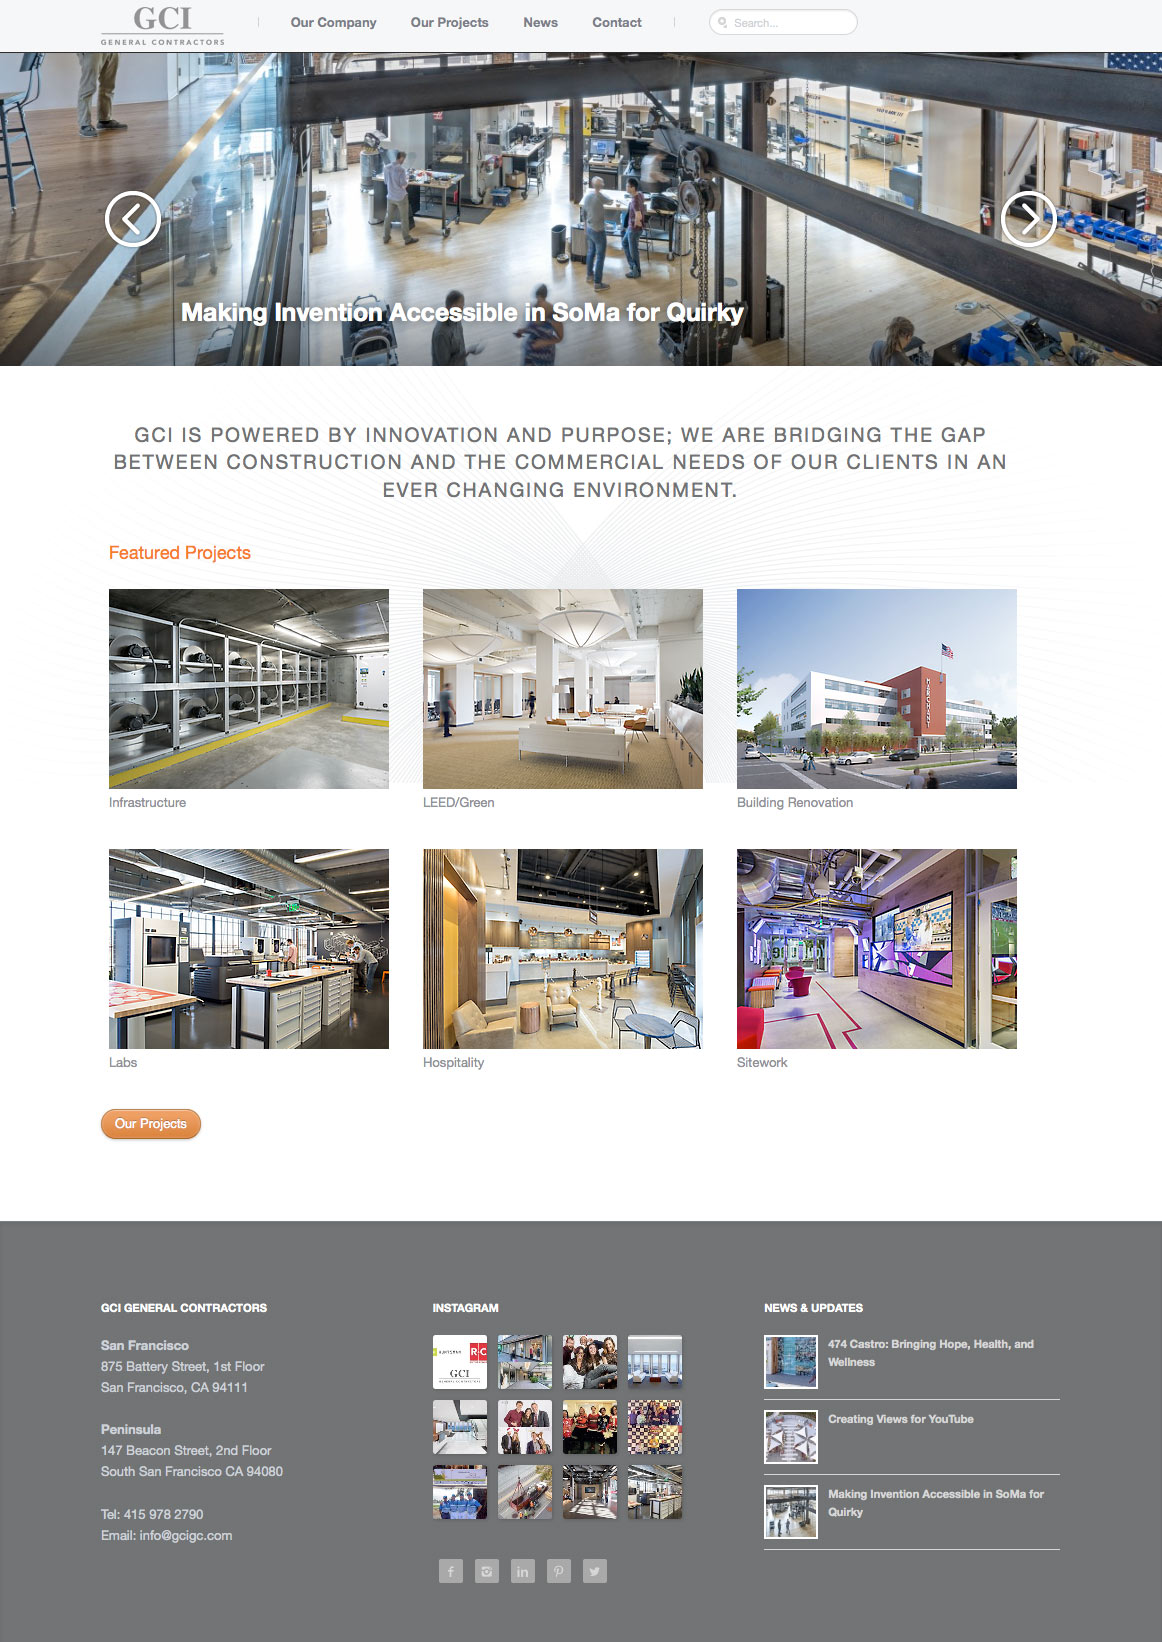 GCI General Contractors: Portfolio site with full-screen slideshows